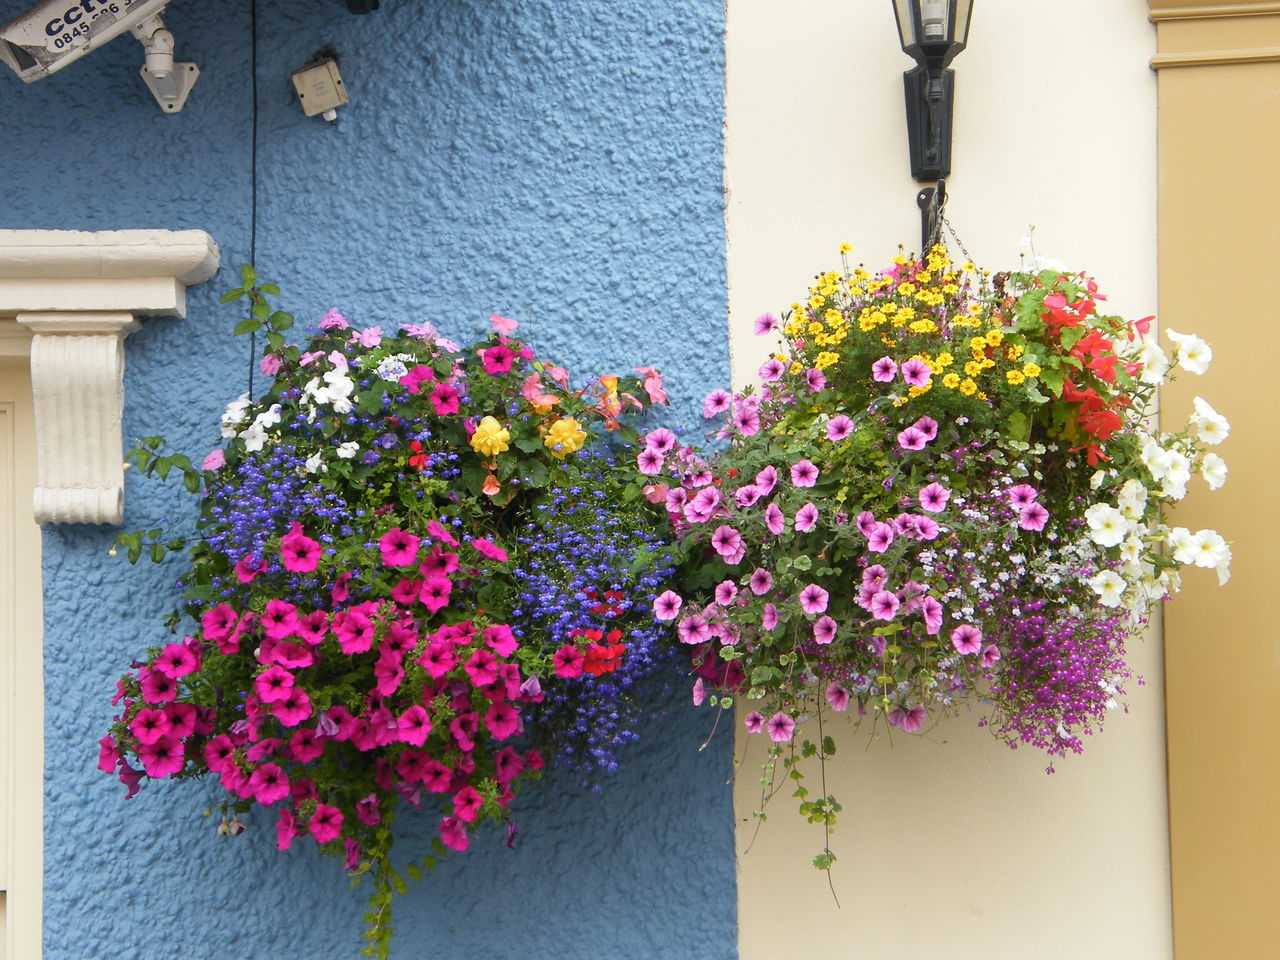 Architecture Beauty In Nature Blooming Building Exterior Built Structure Close-up Day Flower Flower Head Fragility Freshness Growth Nature No People Outdoors Pembrokeshire Pembrokeshire Coast Pembrokeshire Coastal Path Petunia Pink Color Plant Seaside Town Tenby